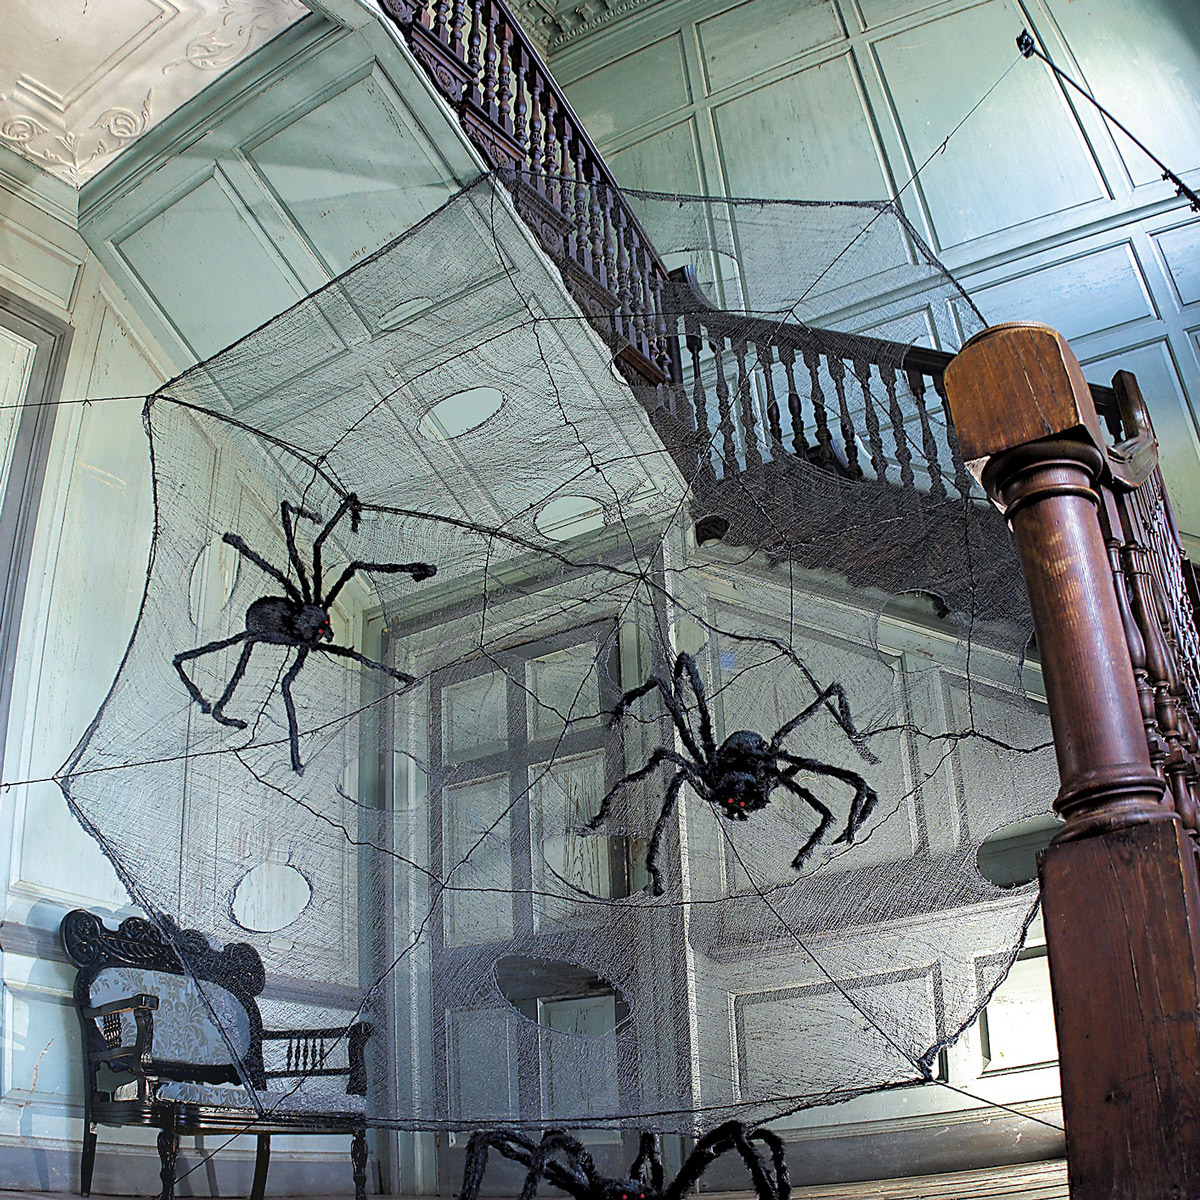 12 Foot Black Spider Web with Giant Spiders - The Green Head